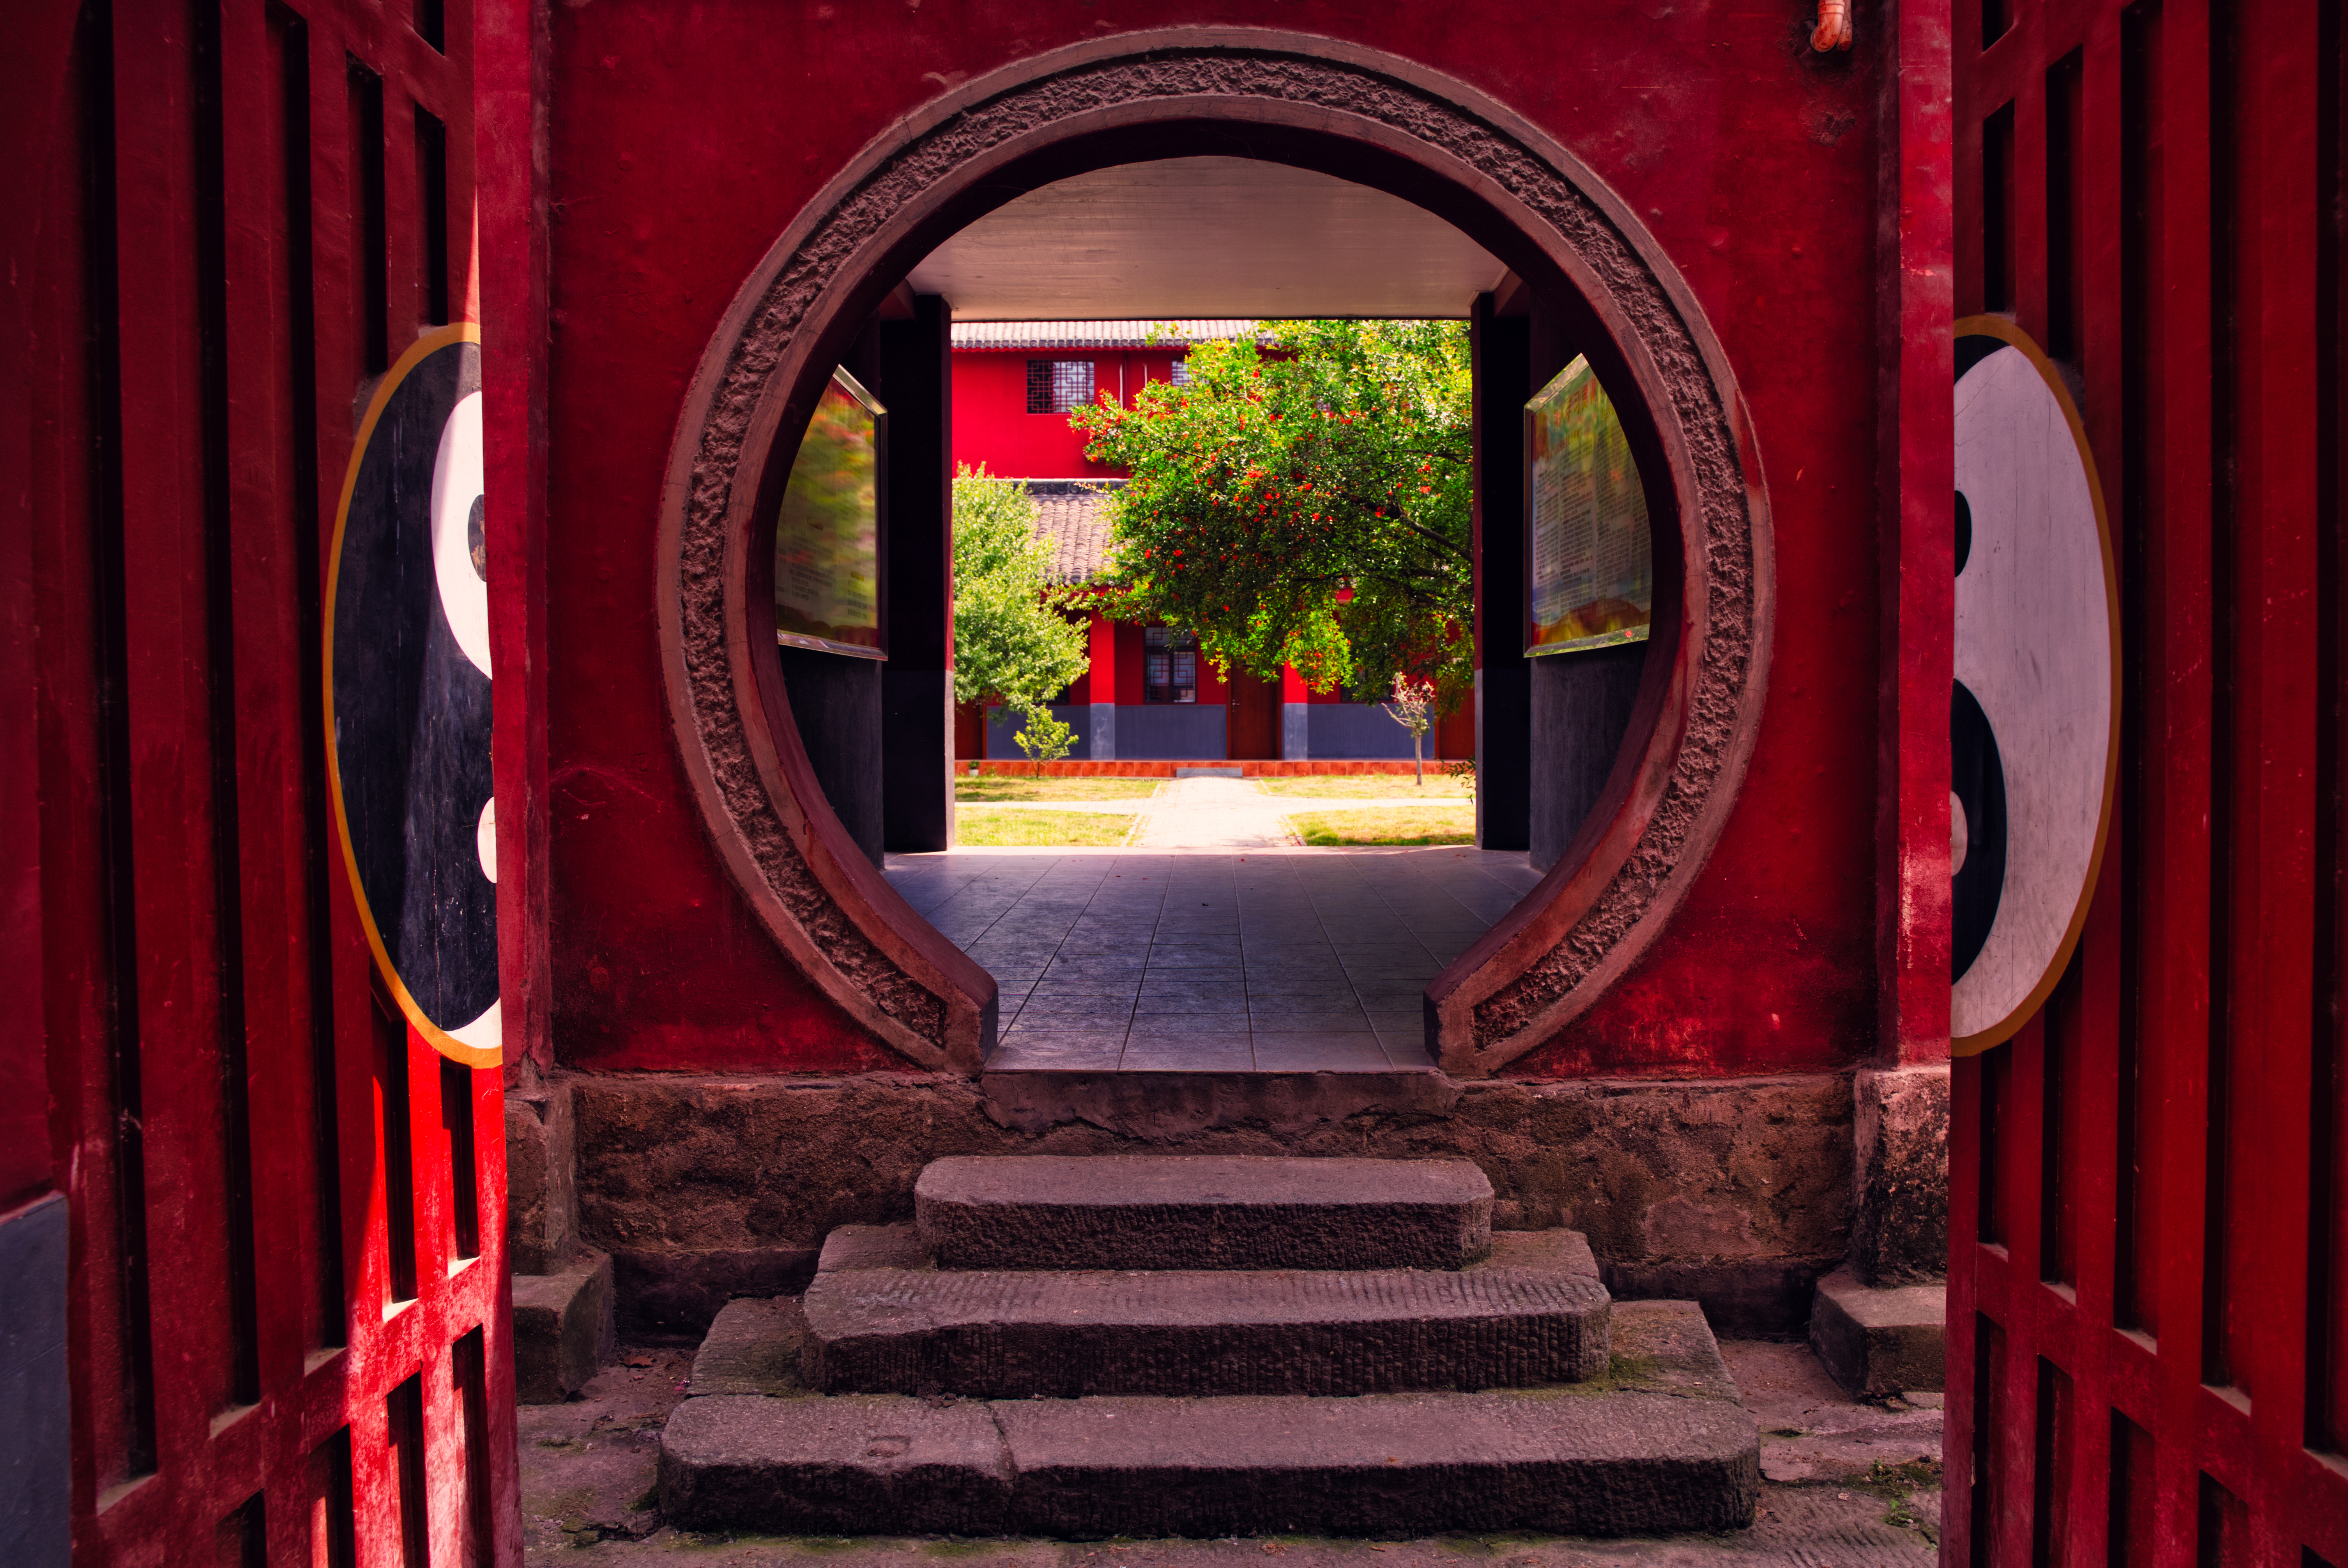 Impressions from the Wudang City